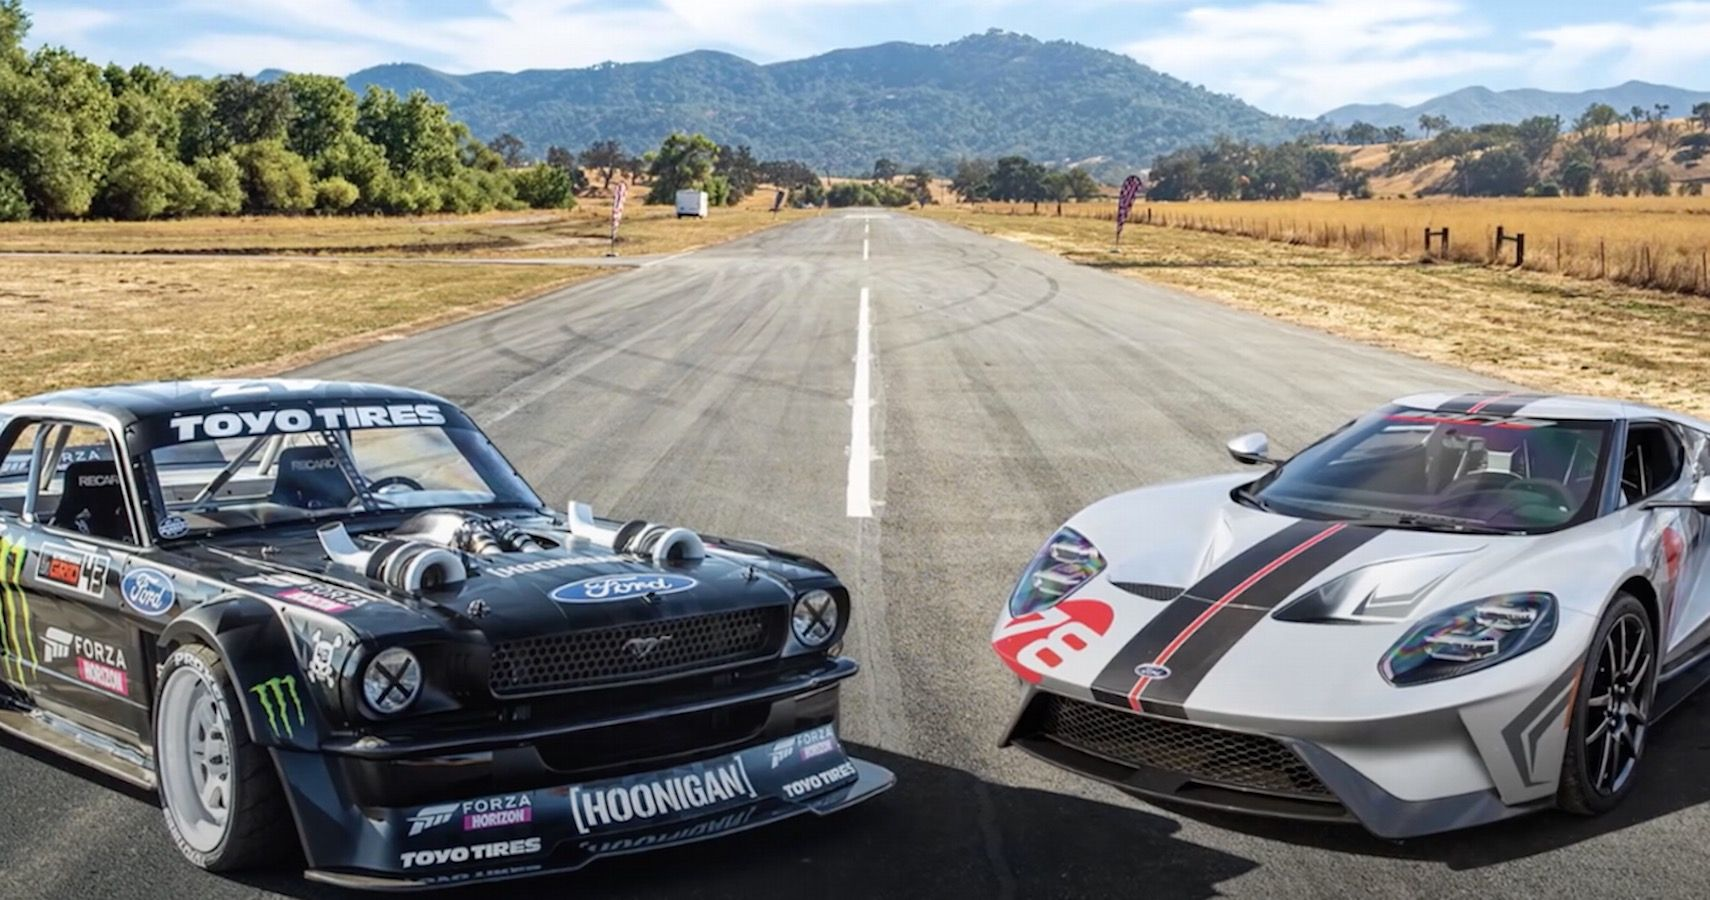 Ford Vs Ford: Watch The 1400-HP Mustang Hoonicorn Drag Race A GT Carbon Series